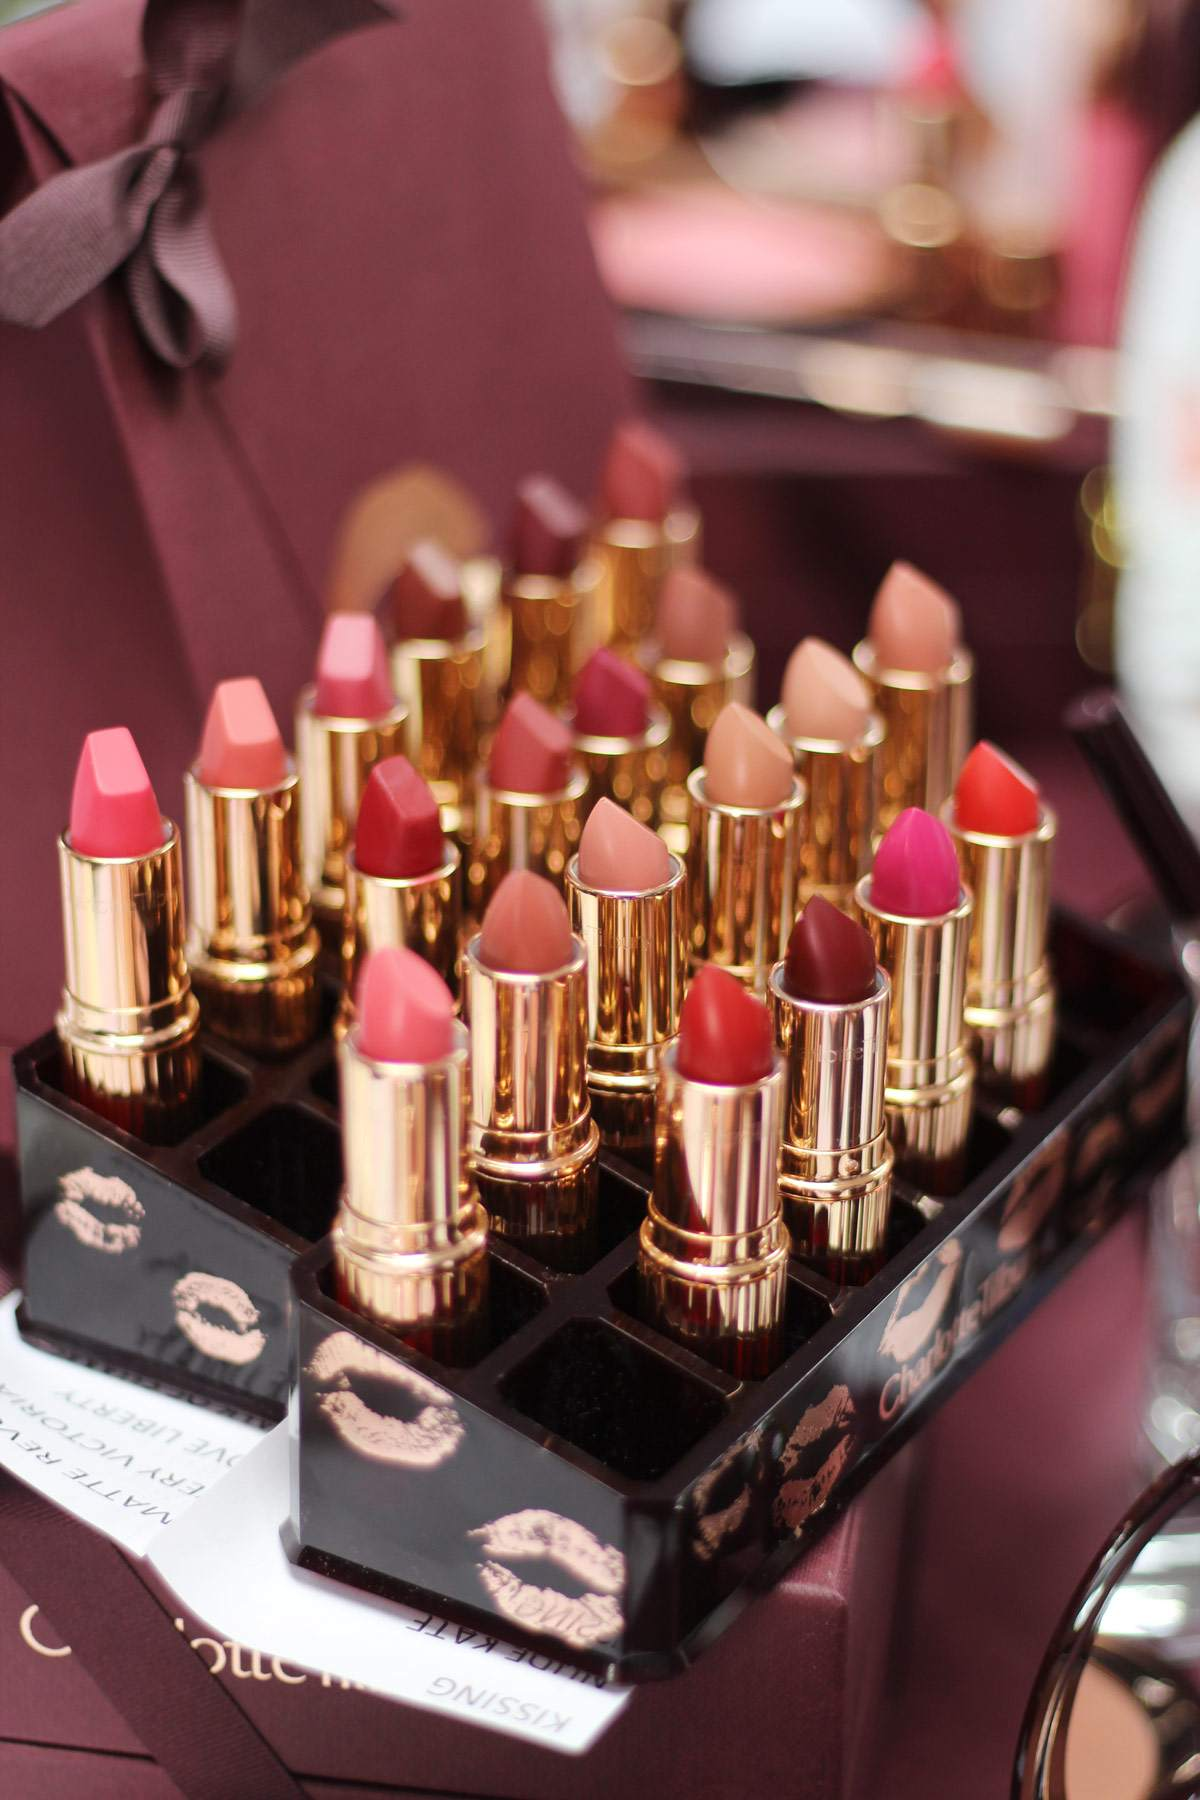 charlotte-tilbury-fenwick-newcastle-event-makeup-kissing-matte-revolution-lipsticks